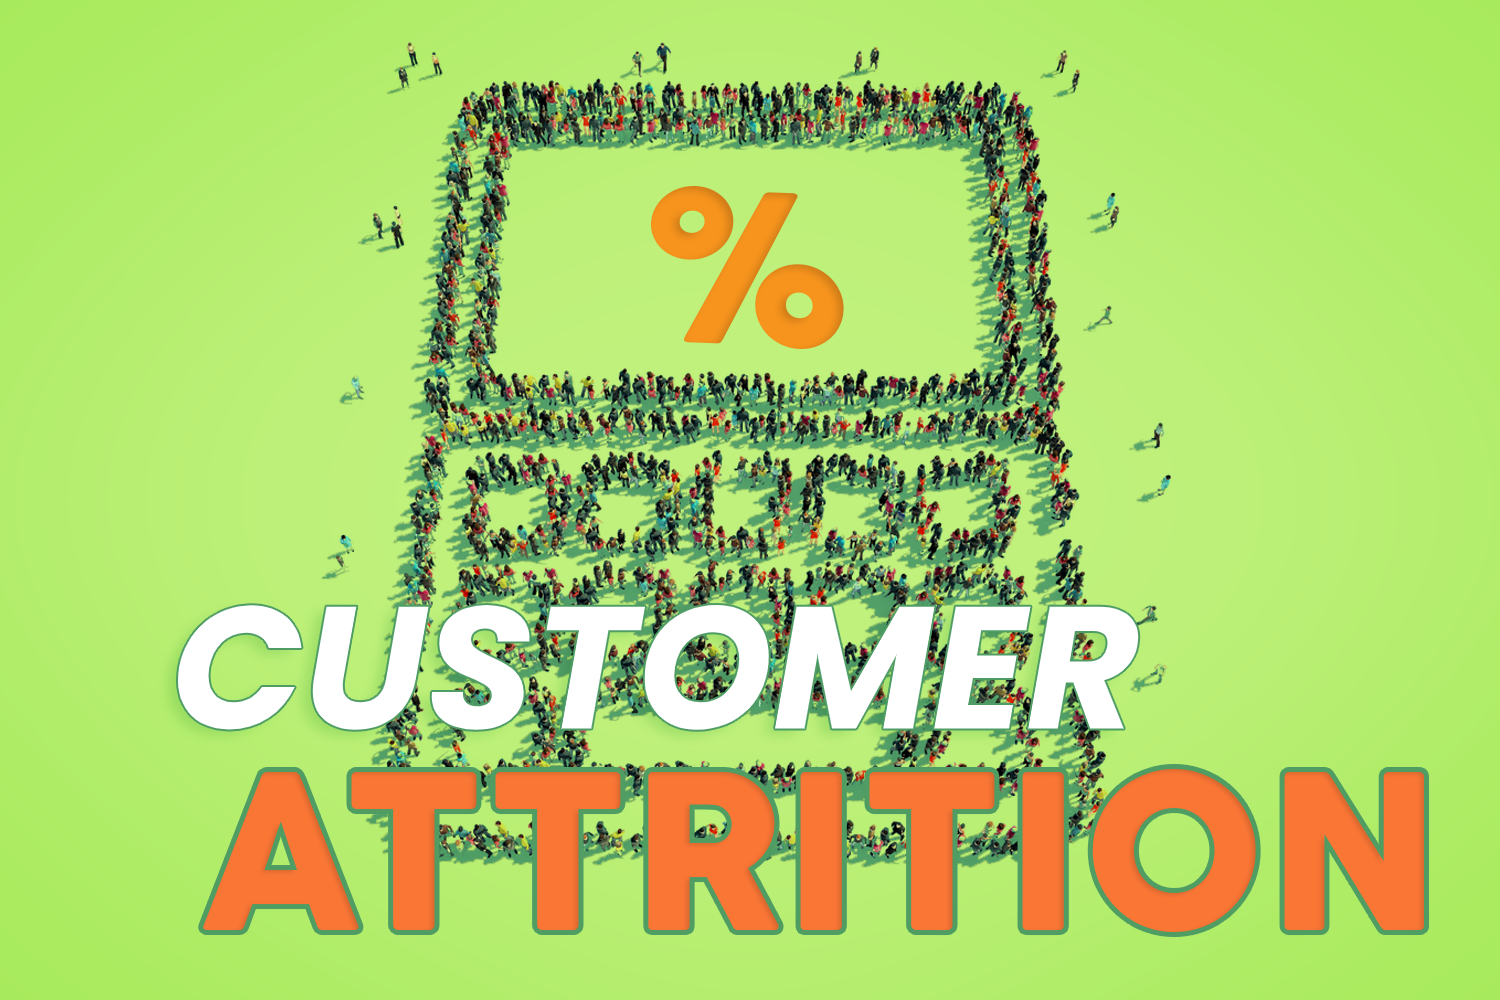 How to reduce customer attrition in 4 simple steps!